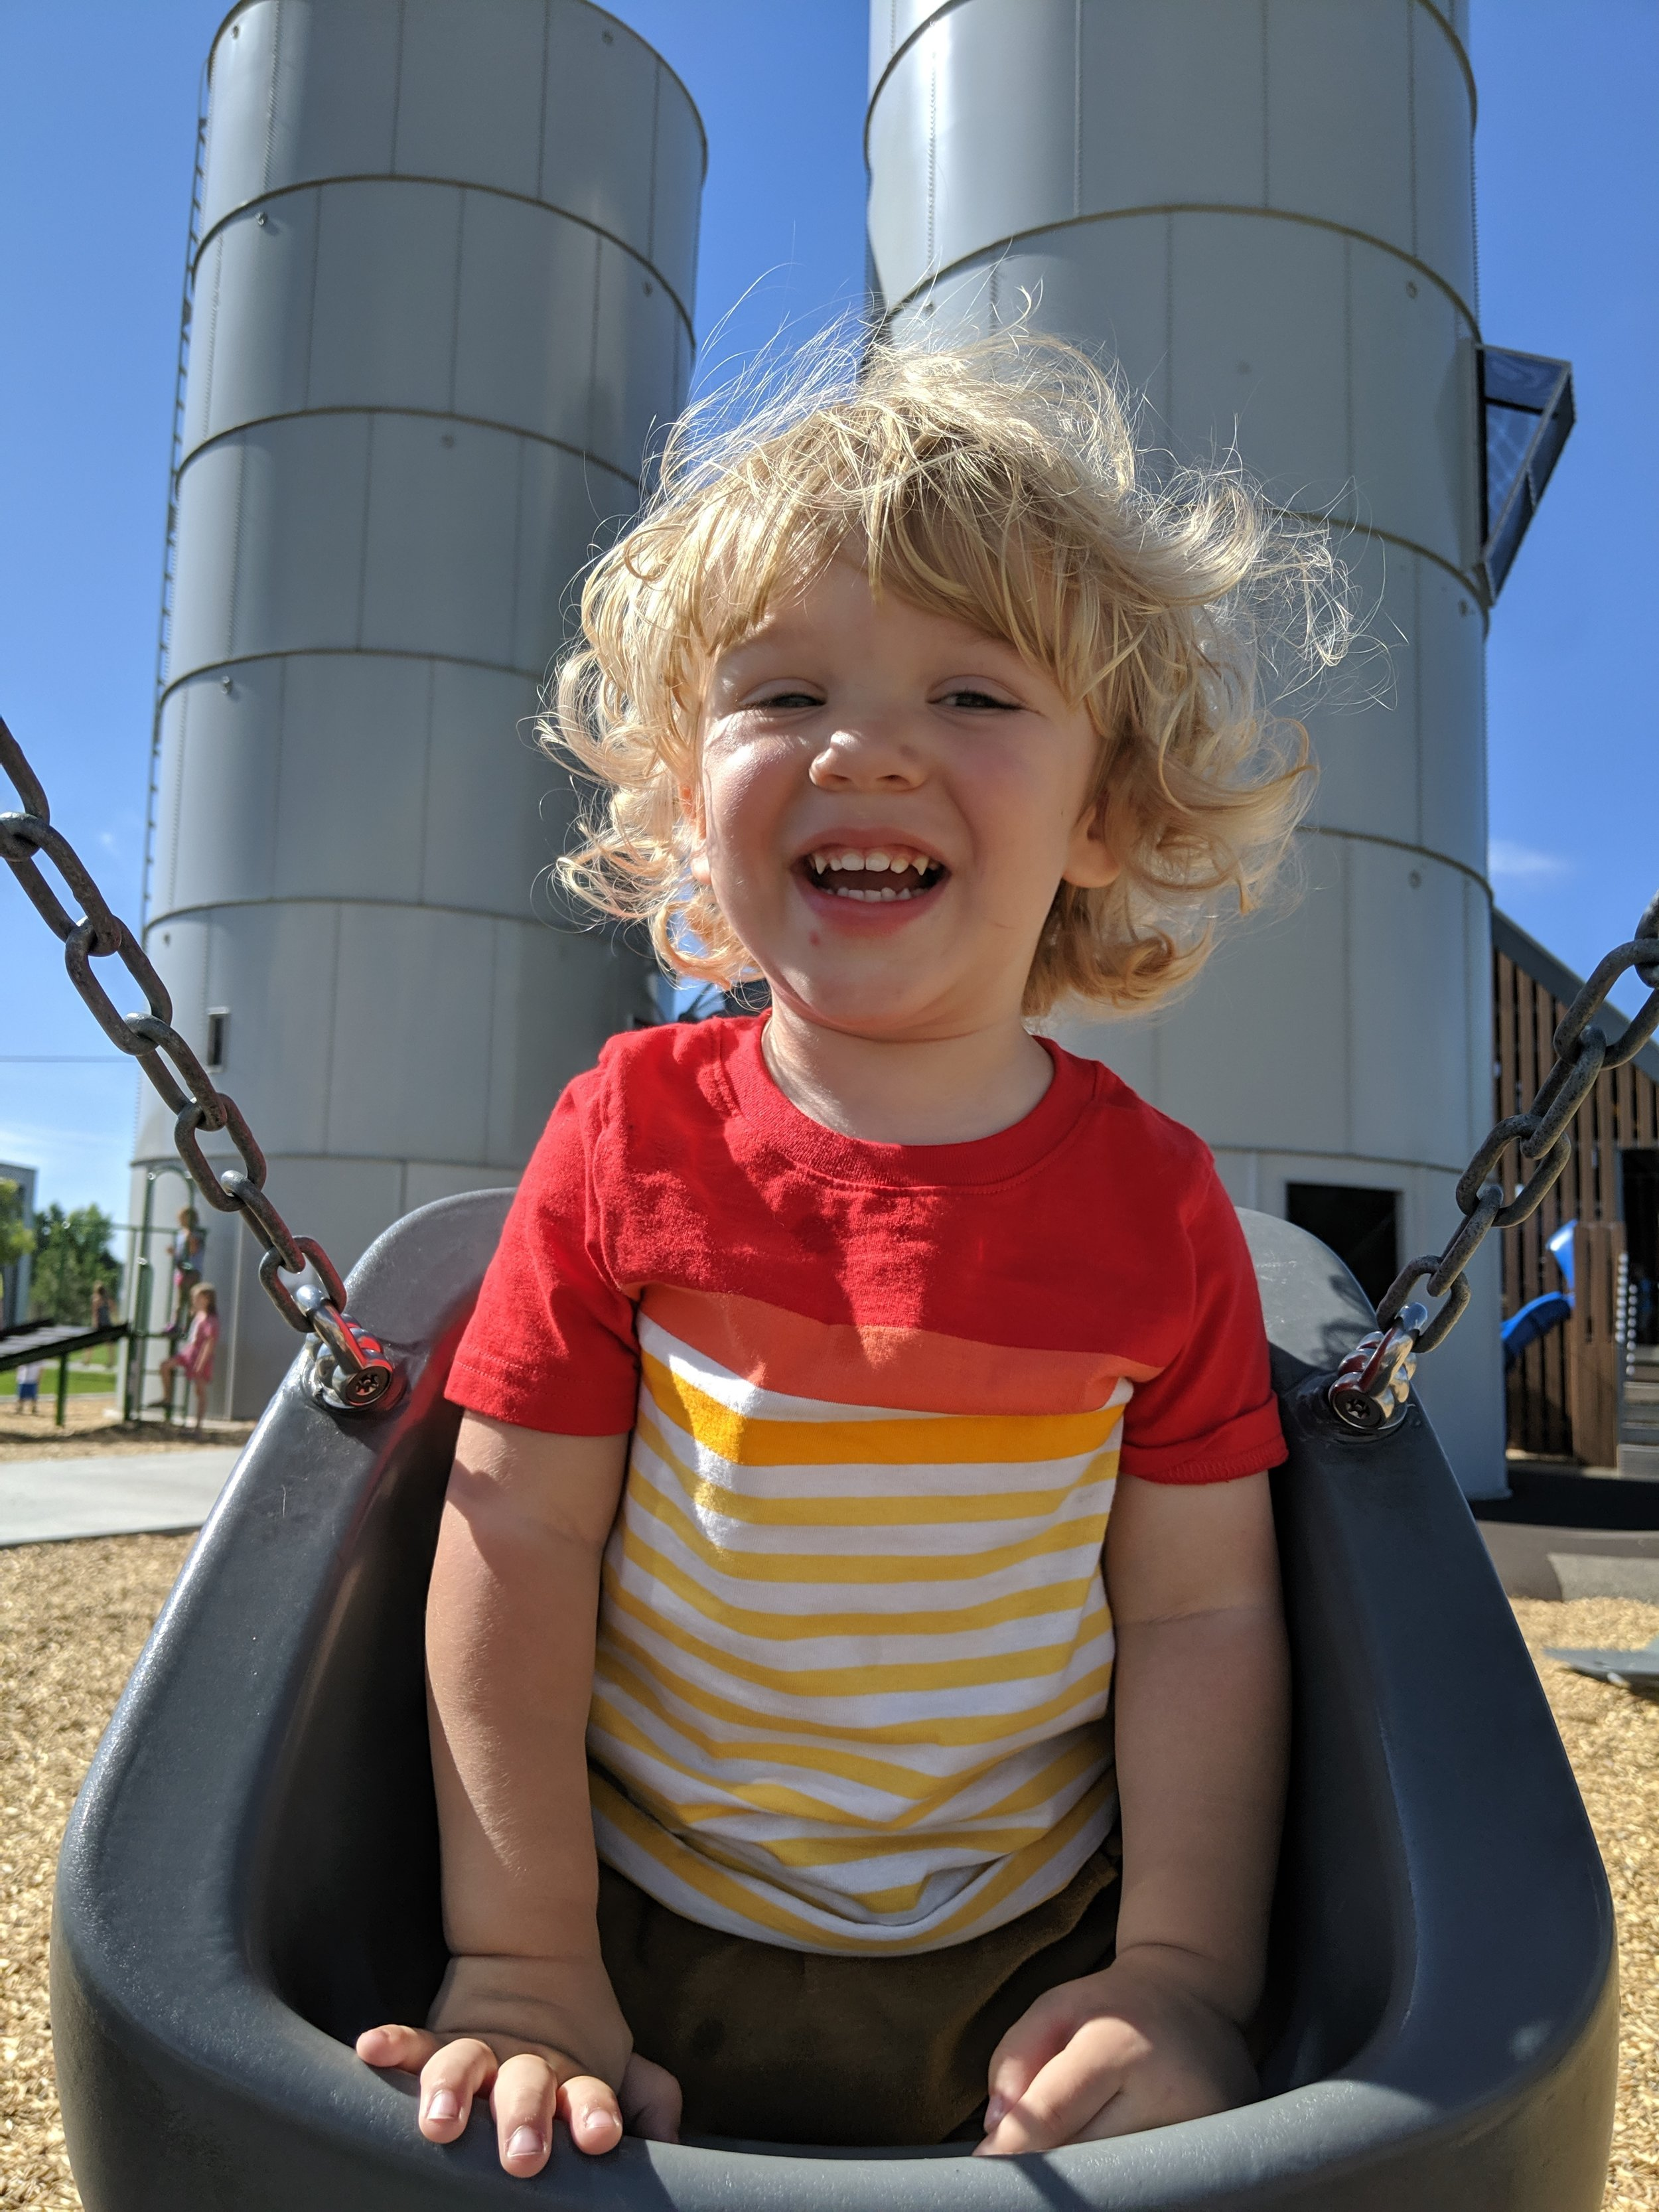 Gus and I enjoying our last swing at Twin Silo park in Fort Collins, Colorado.